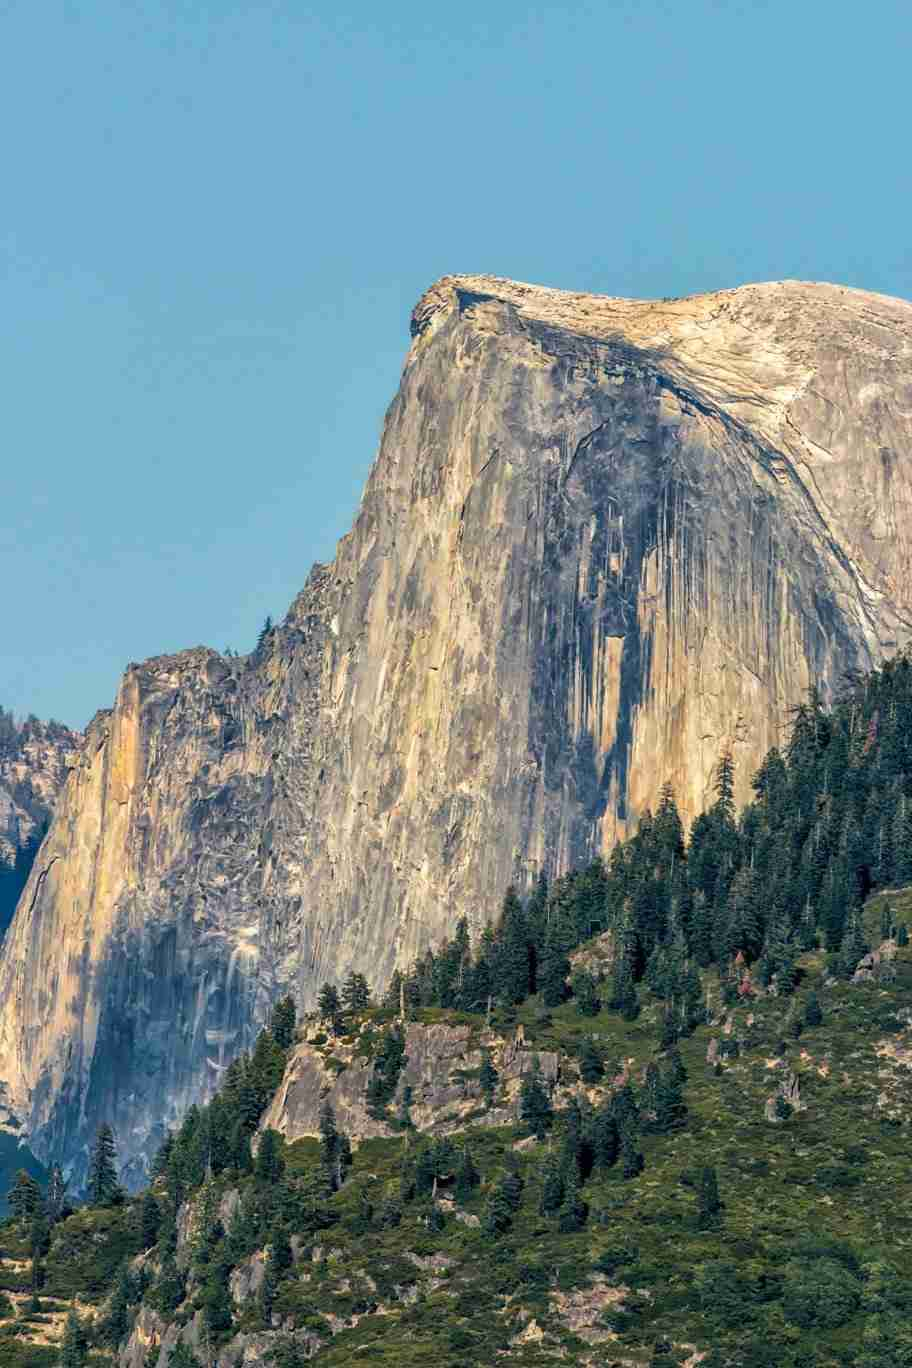 Print of the Face of Yosemite's Half-Dome